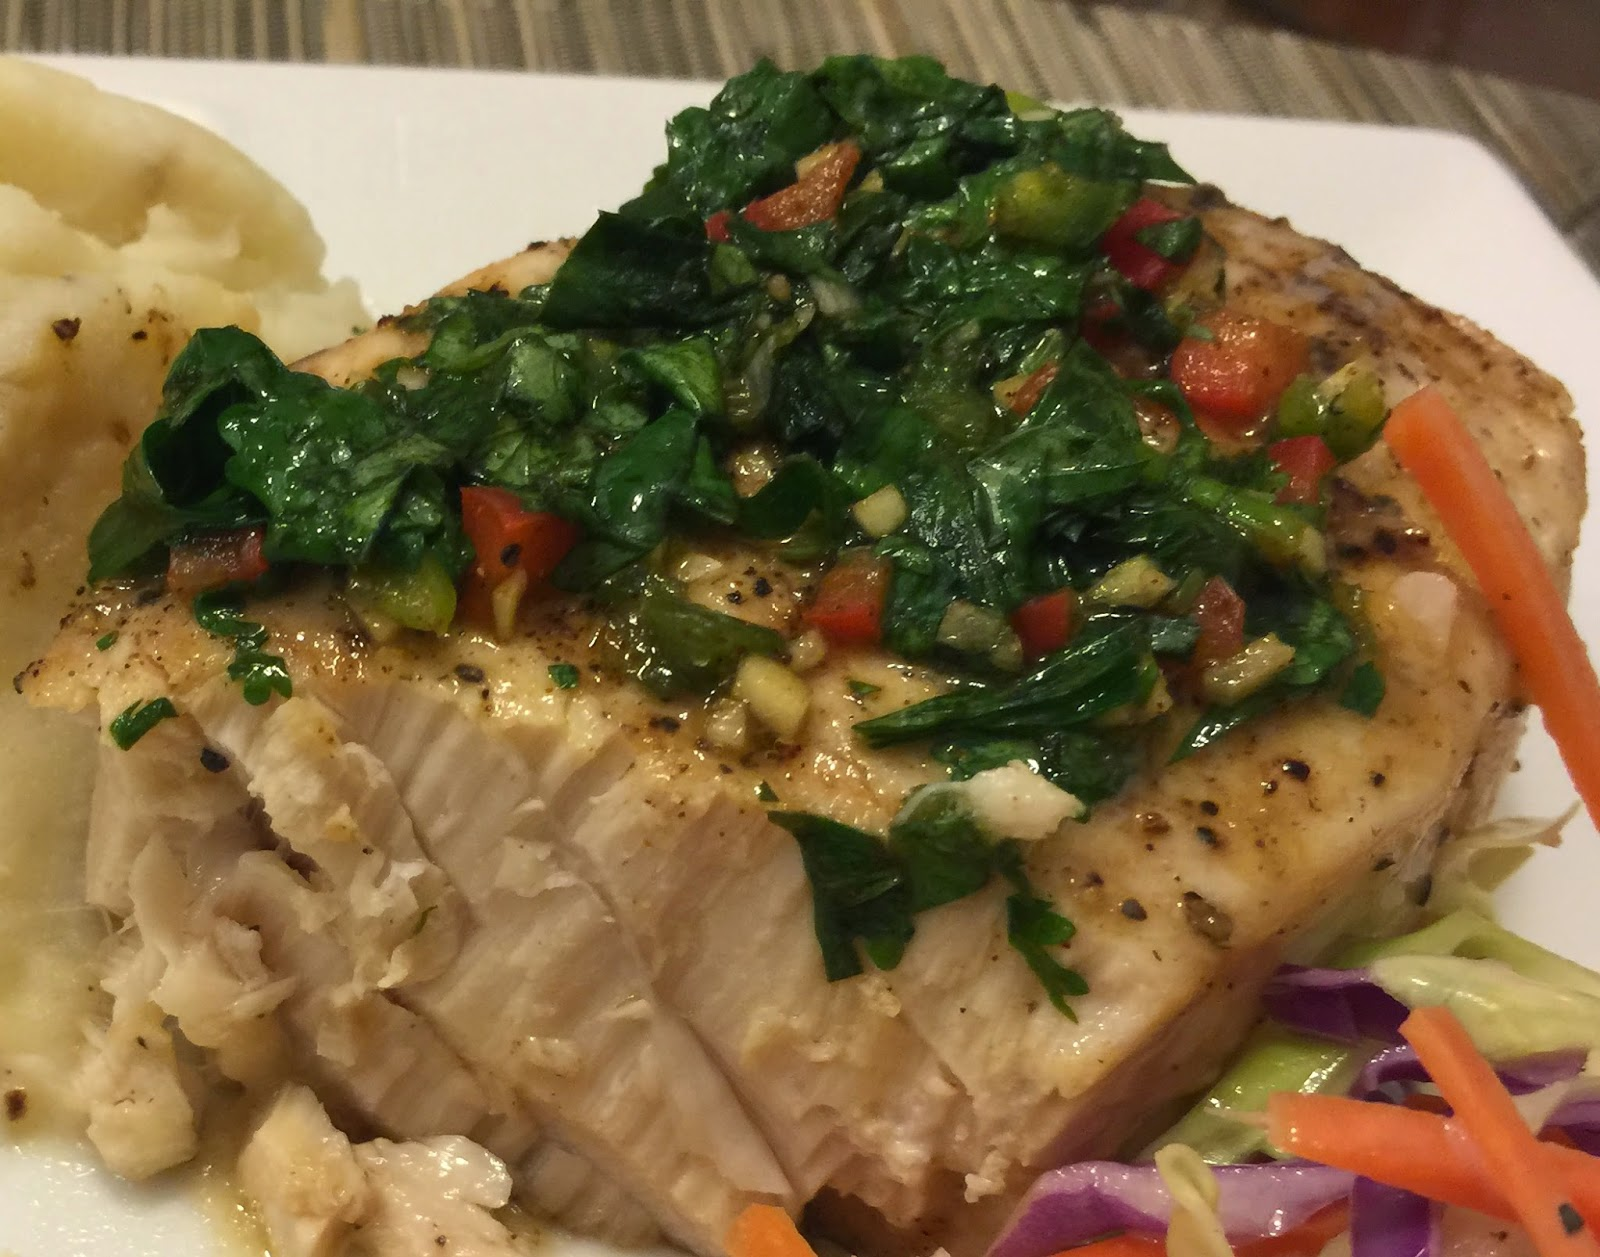 Taste of hawaii grilled striped marlin for Marlin fish recipes